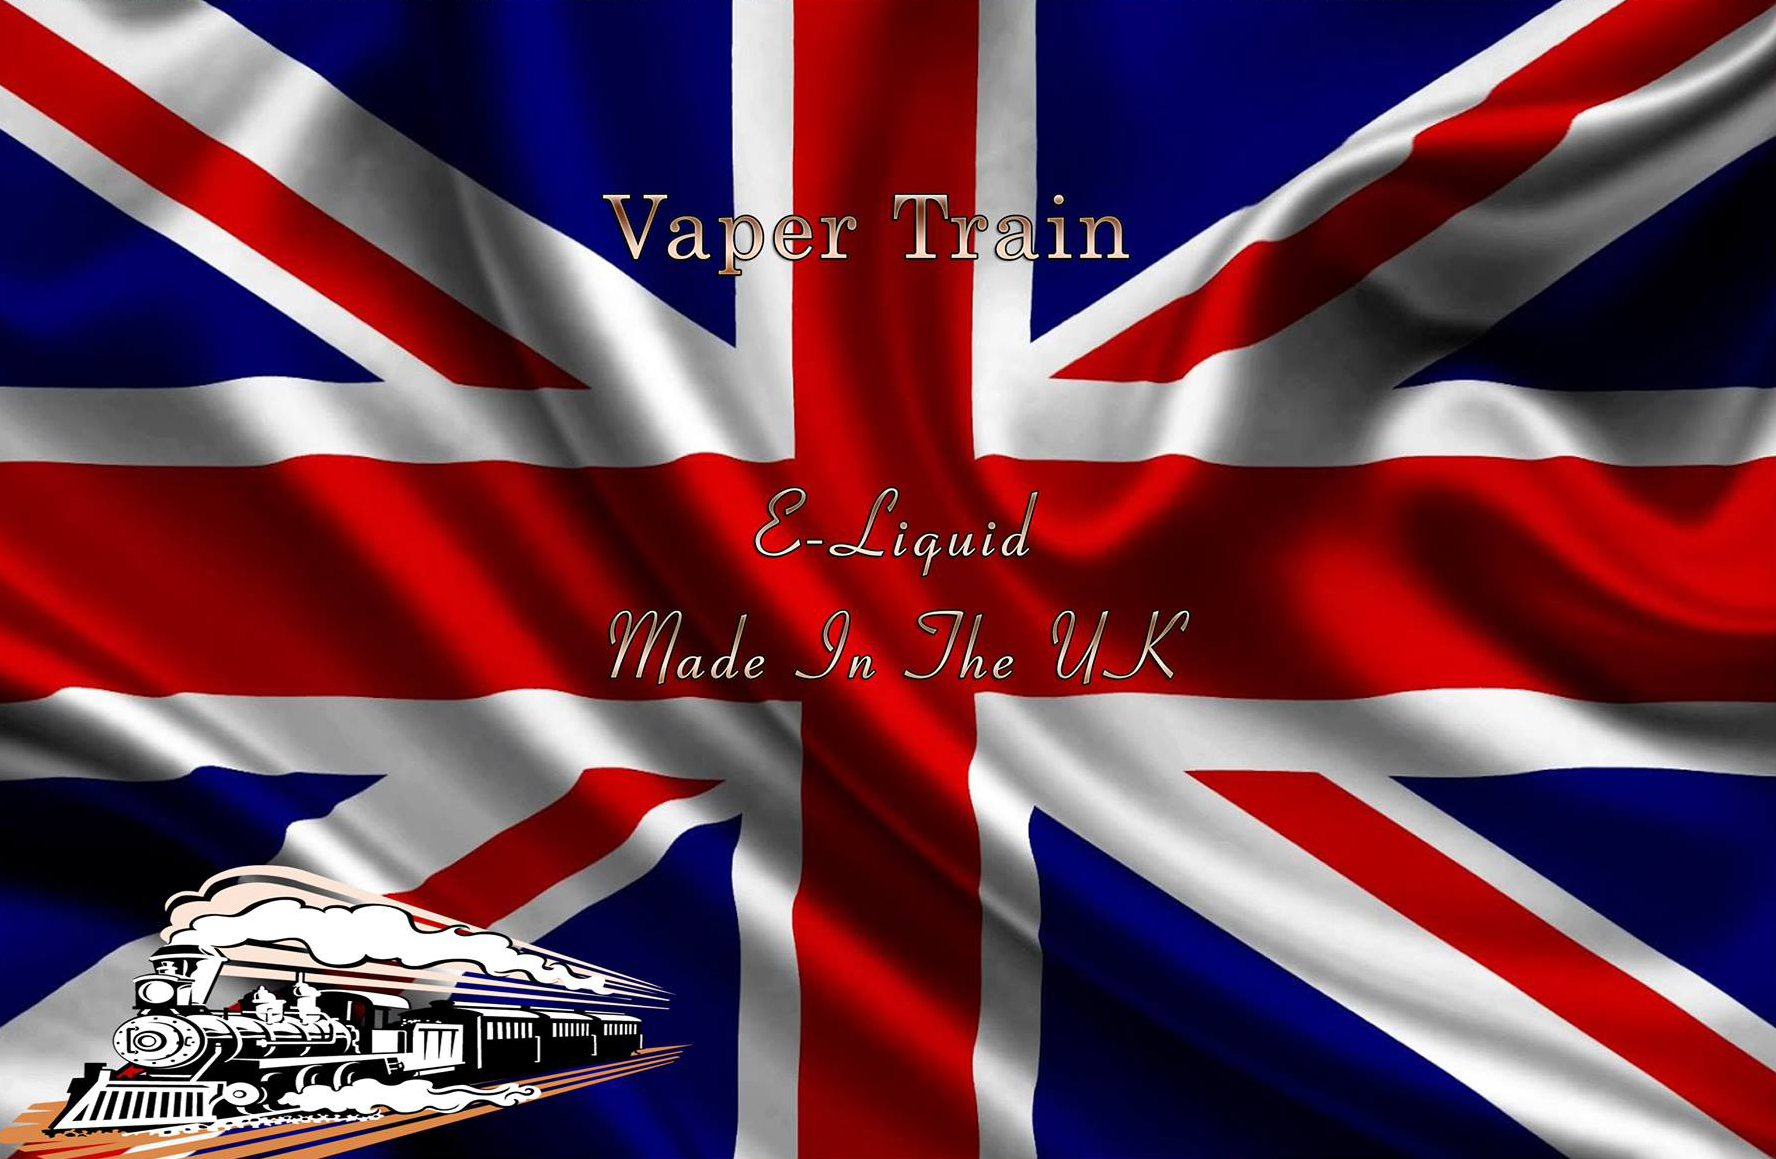 Eliquid made in the UK